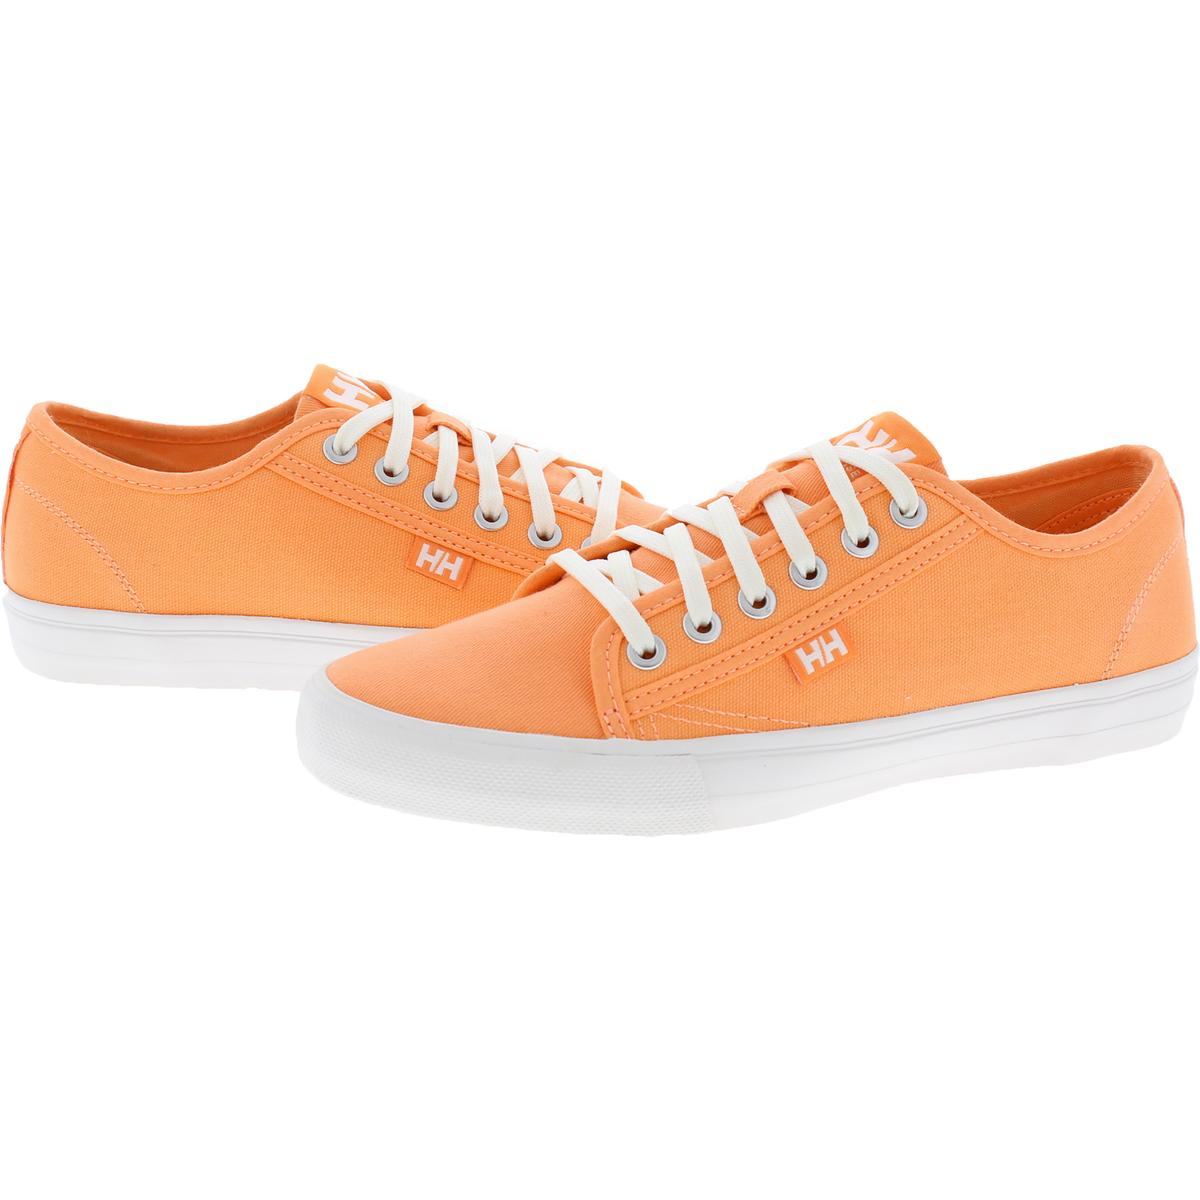 thumbnail 12 - Helly-Hansen-Womens-Fjord-V2-Lifestyle-Trainers-Fashion-Sneakers-Shoes-BHFO-9905